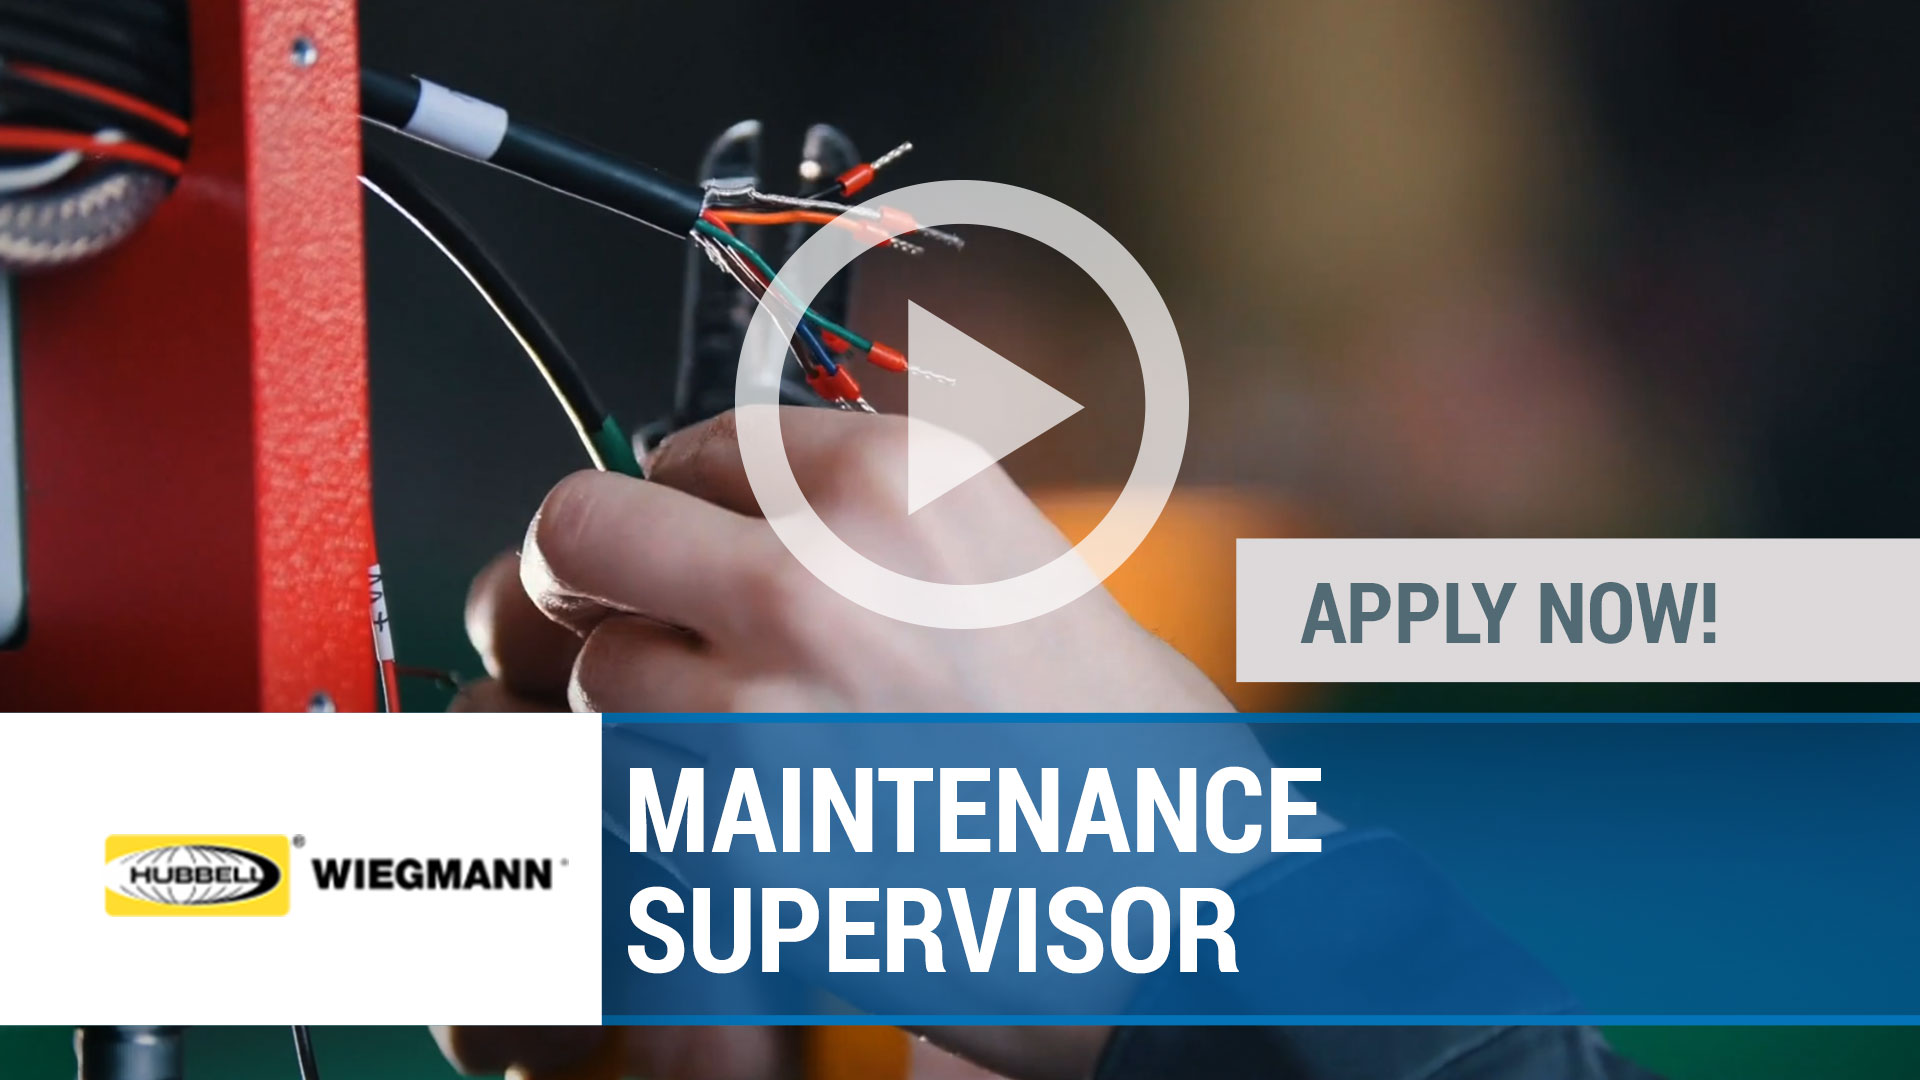 Watch our careers video for available job opening MAINTENANCE SUPERVISOR in Freeburg, IL, USA